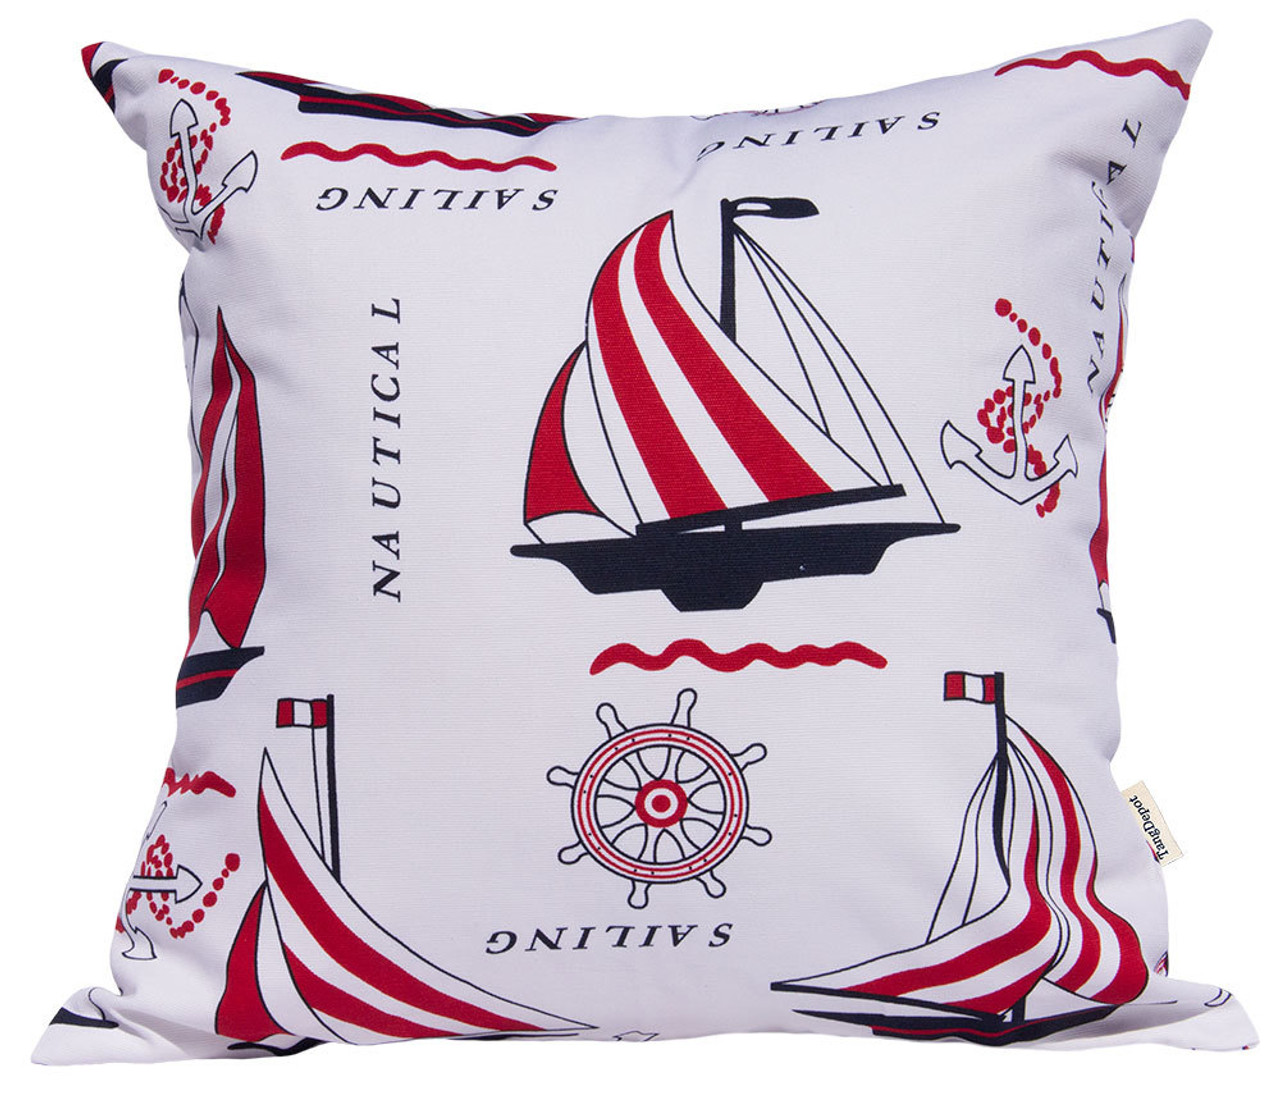 TangDepot Decorative Handmade Cotton Throw Pillow Covers /Pillow Shams, Sailing, Bike, Fire_Balloon theme cushion cover